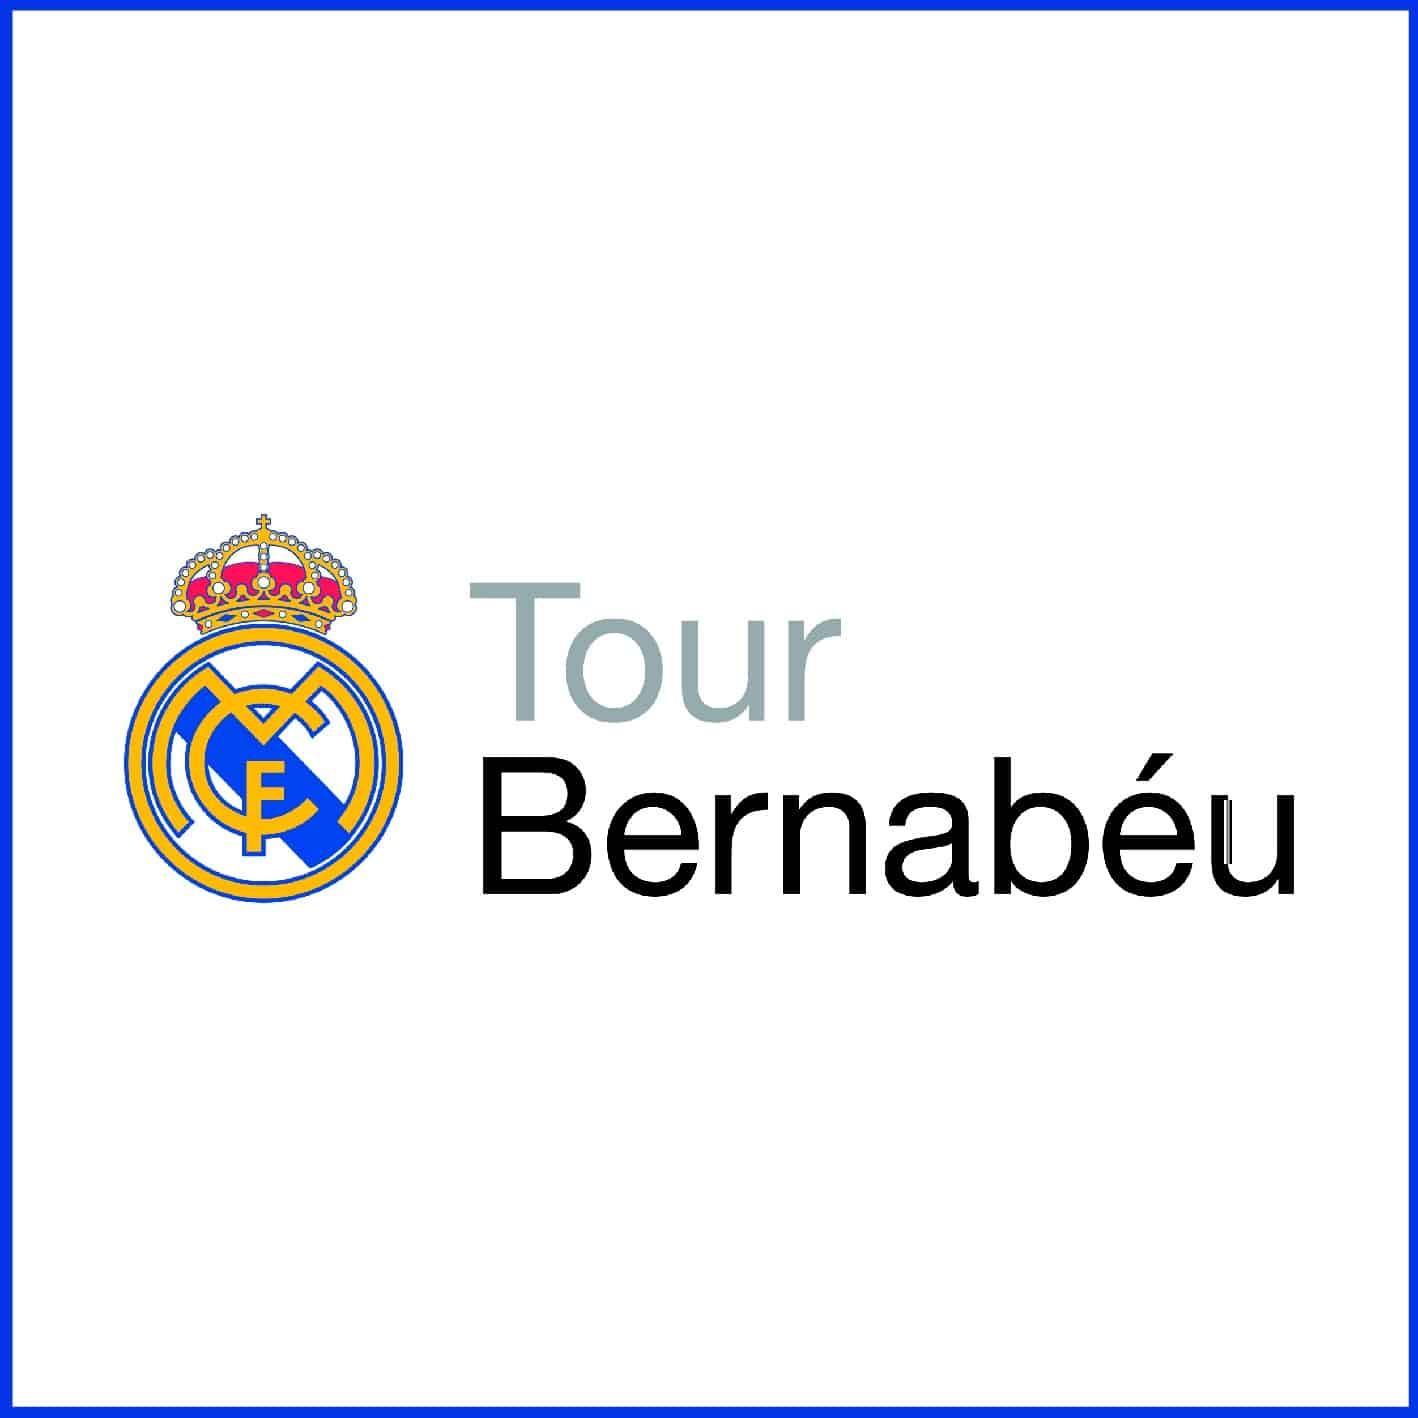 "<span style=""color:red;"">Free gift souvenir</span><br />Real Madrid: A unique experience!"